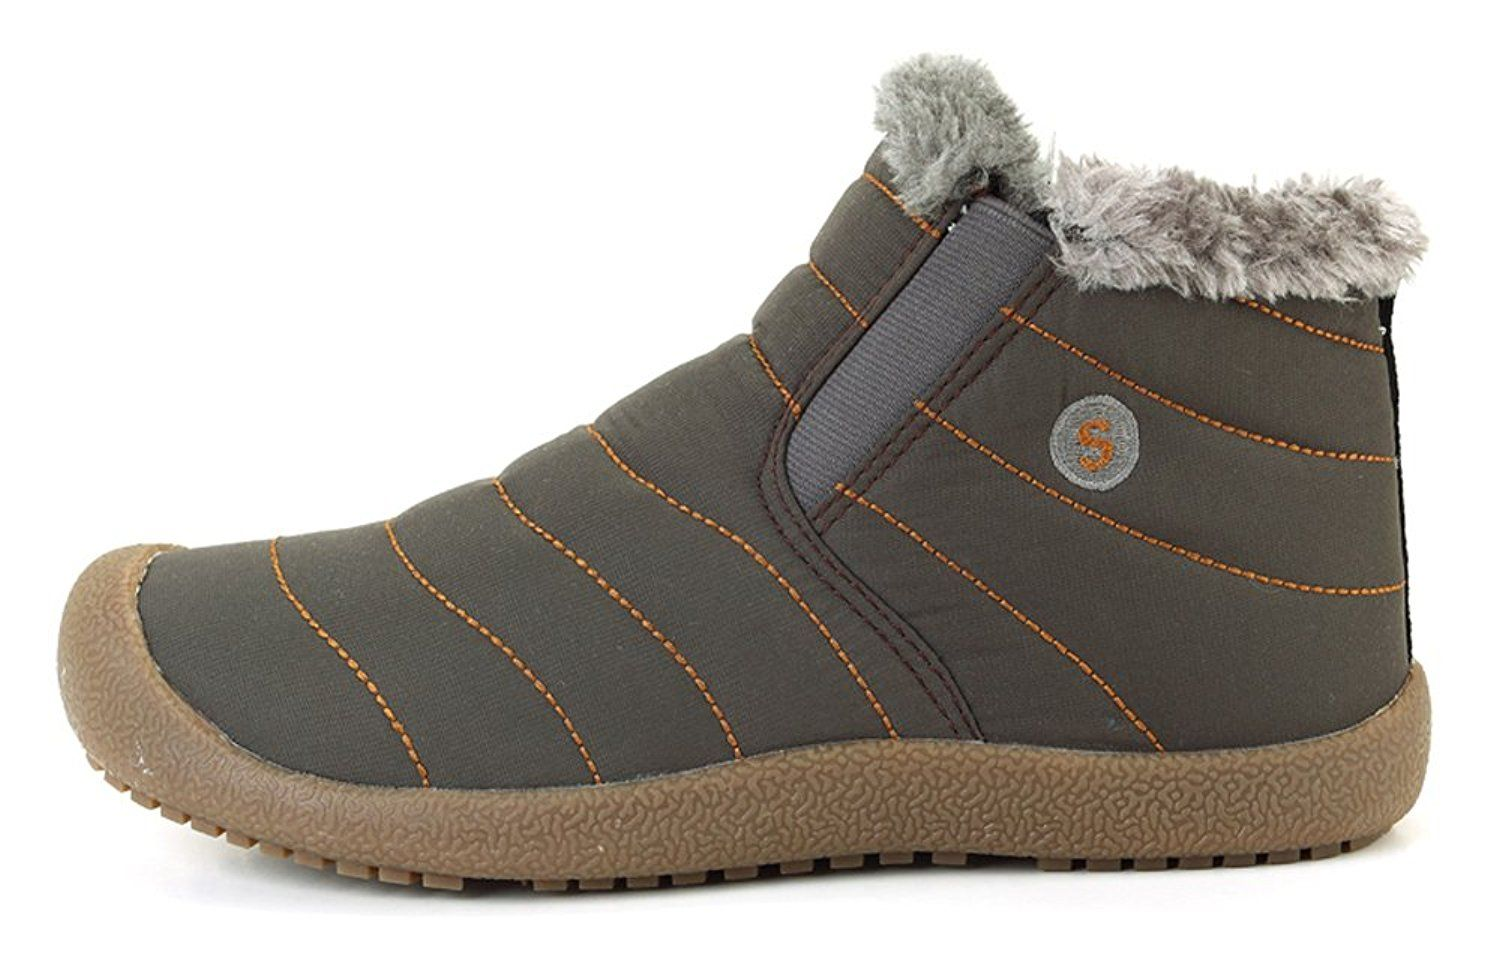 0bdbb8c7fc3118 MOHEM Mens High Top Waterproof Winter Outdoor Slippers Anti-Slip Snow Boots  With Fully Fur Lined -- Check out this great product.